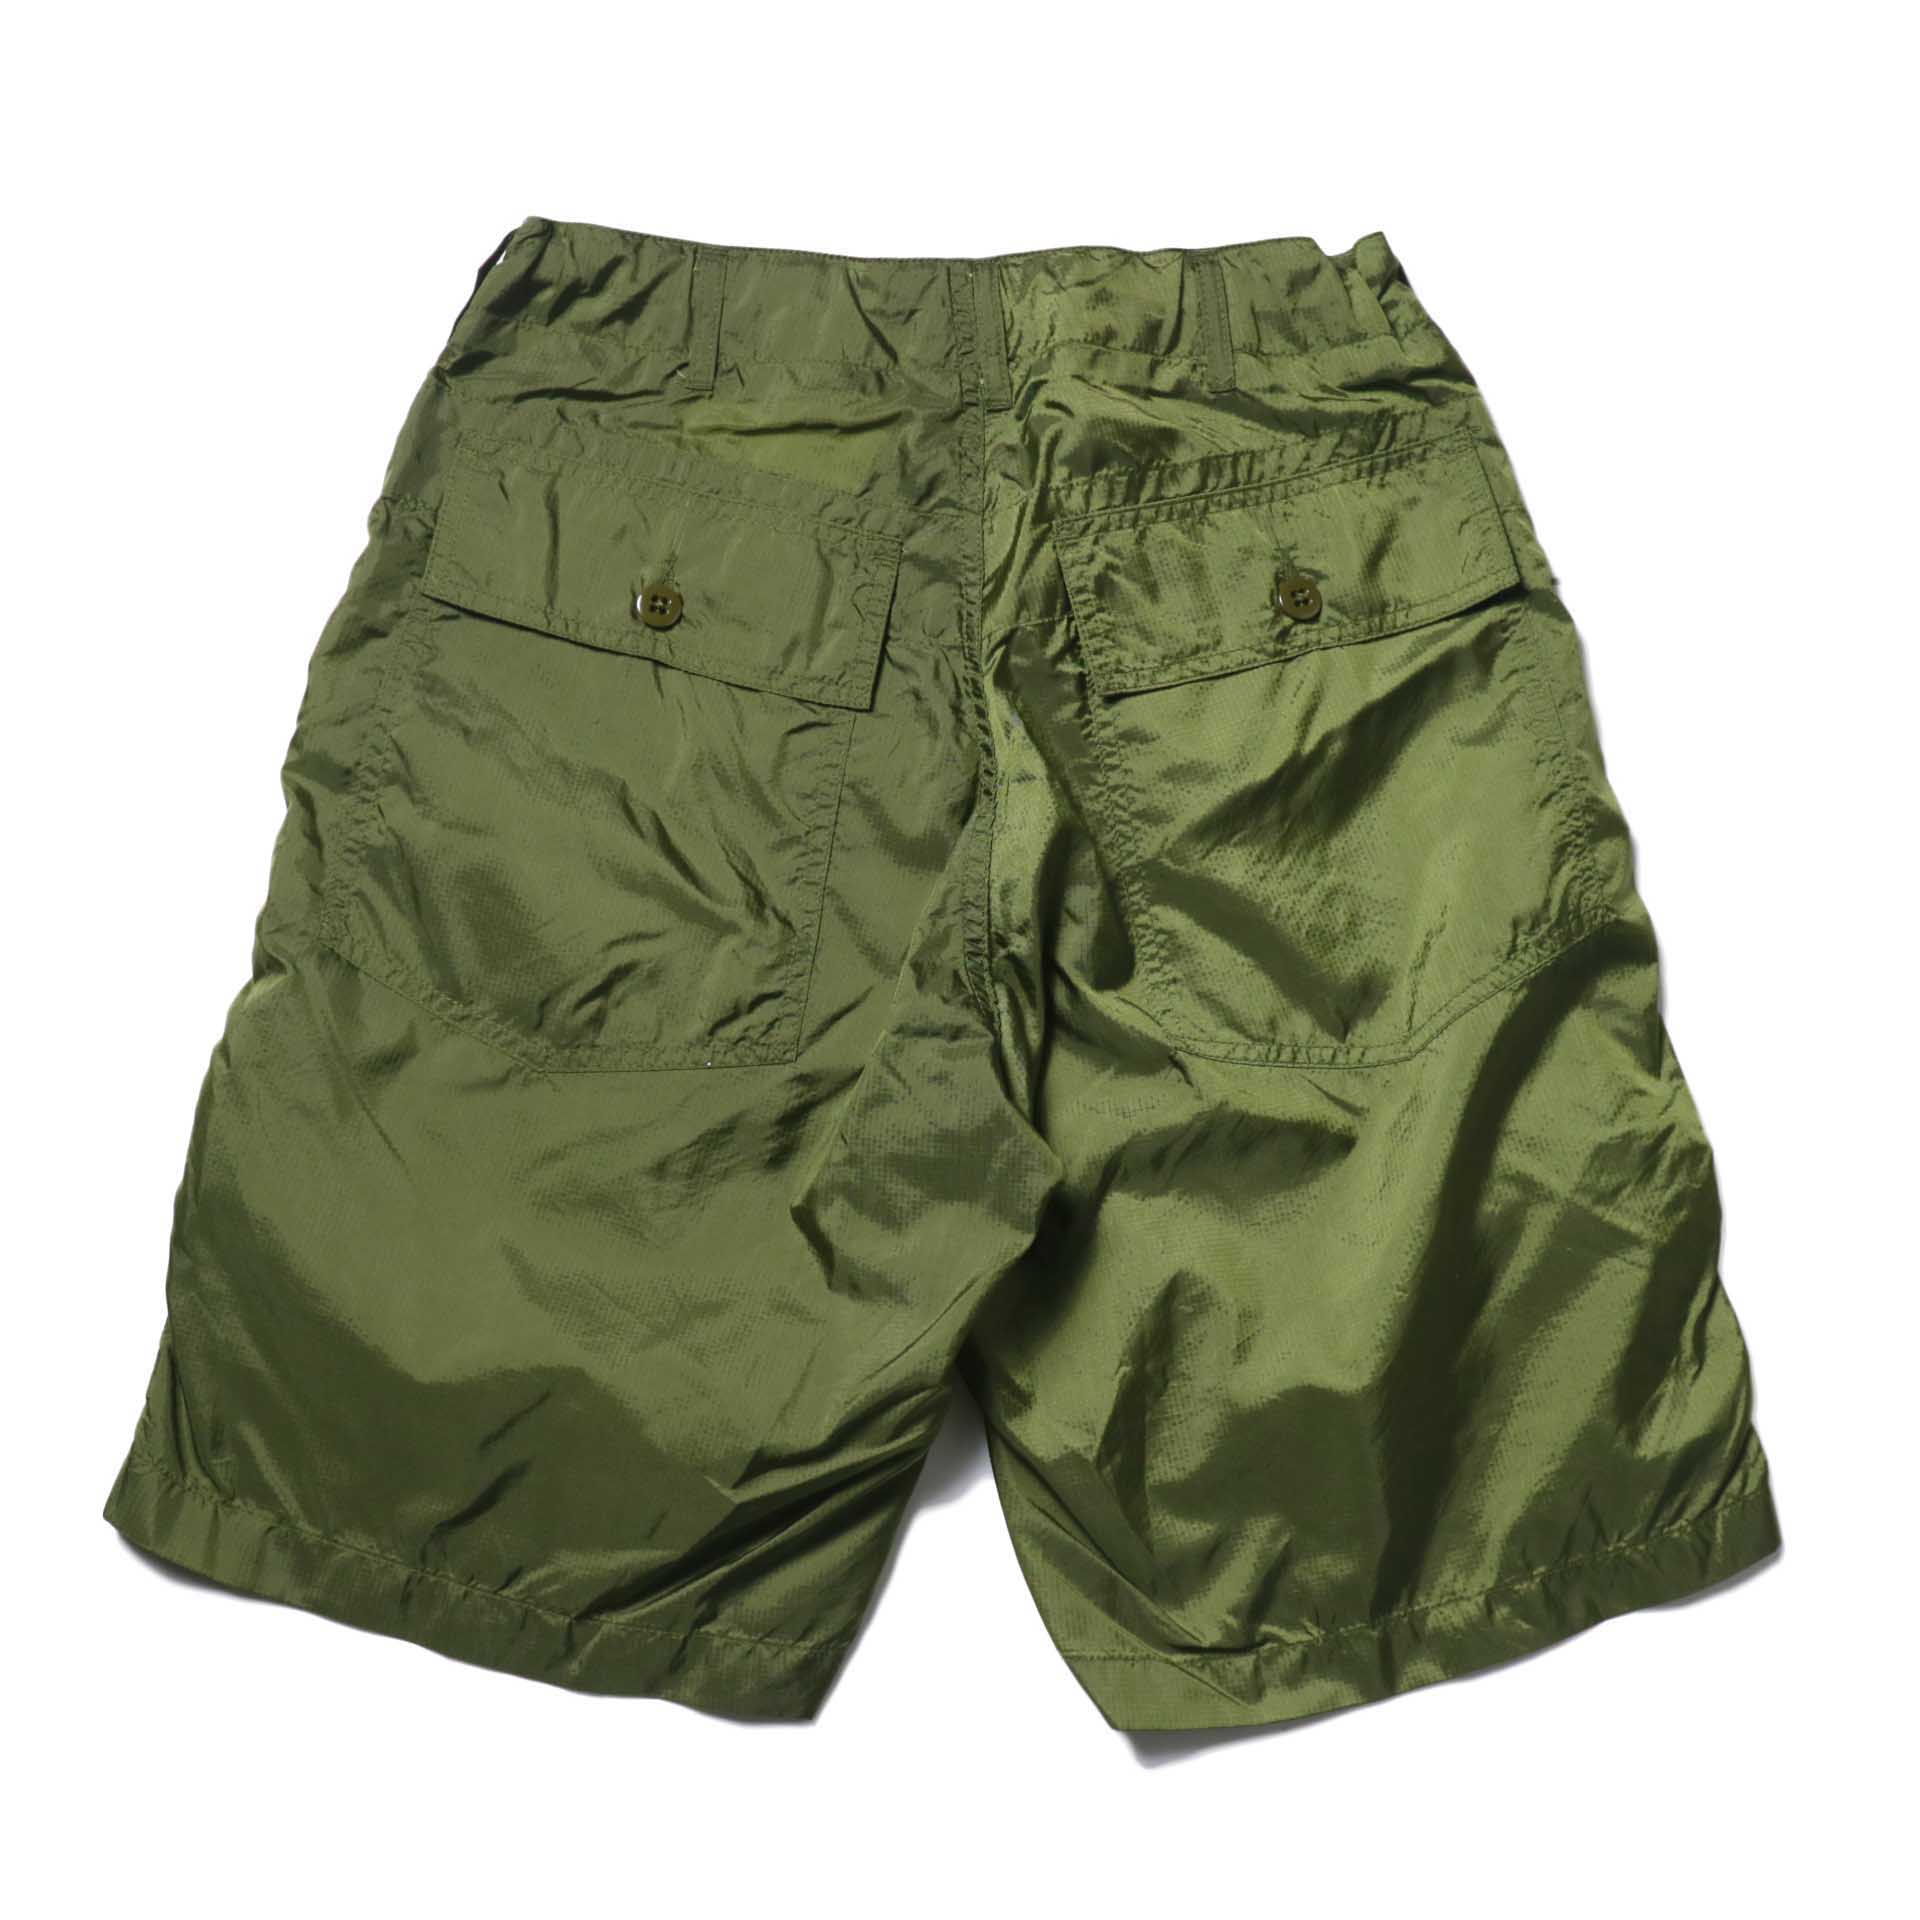 Engineered Garments / Fatigue Short -Micro Ripstop (Olive)背面